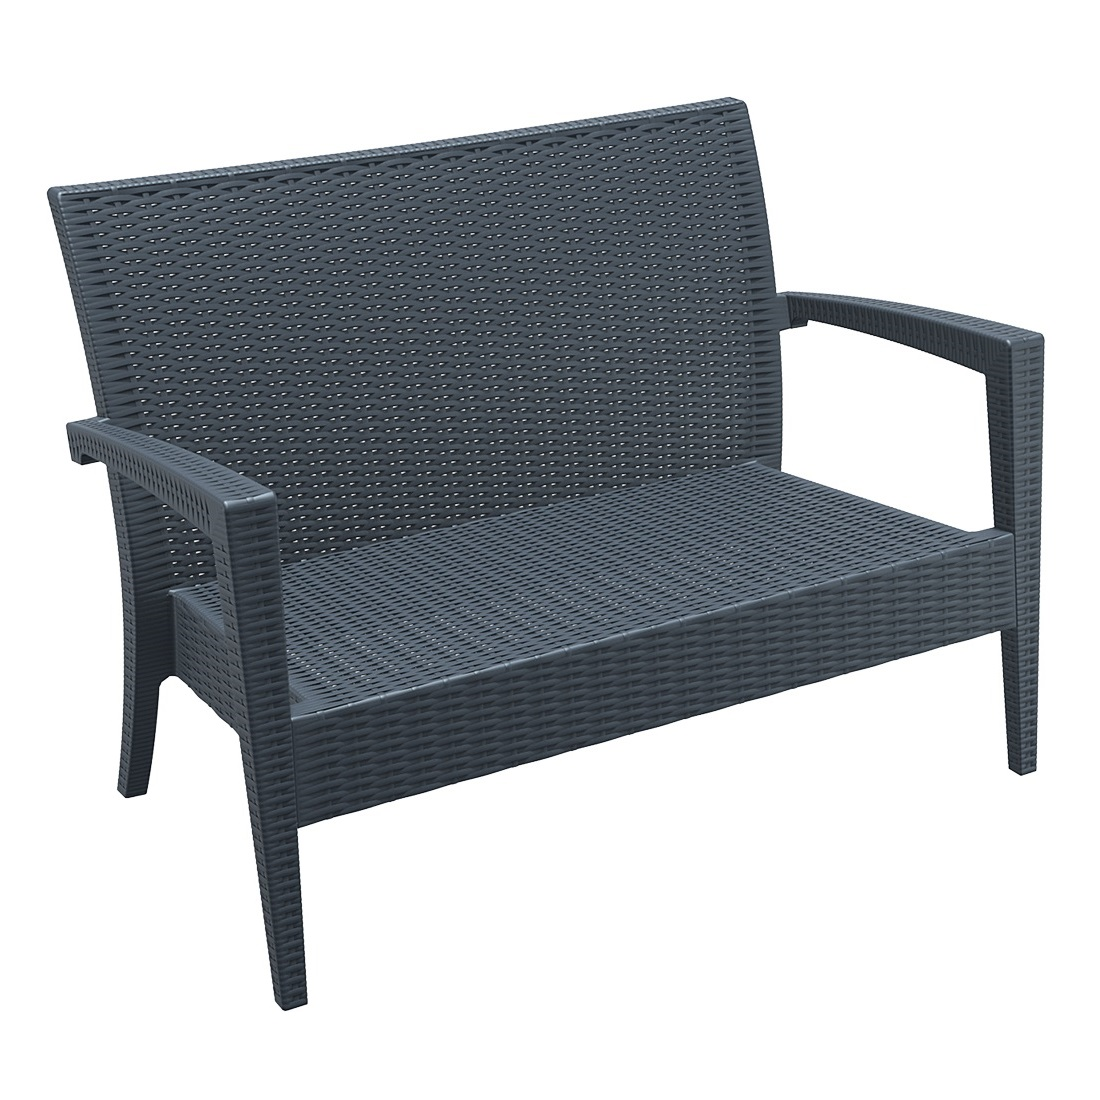 Tequila Lounge Sofa - Anthracite